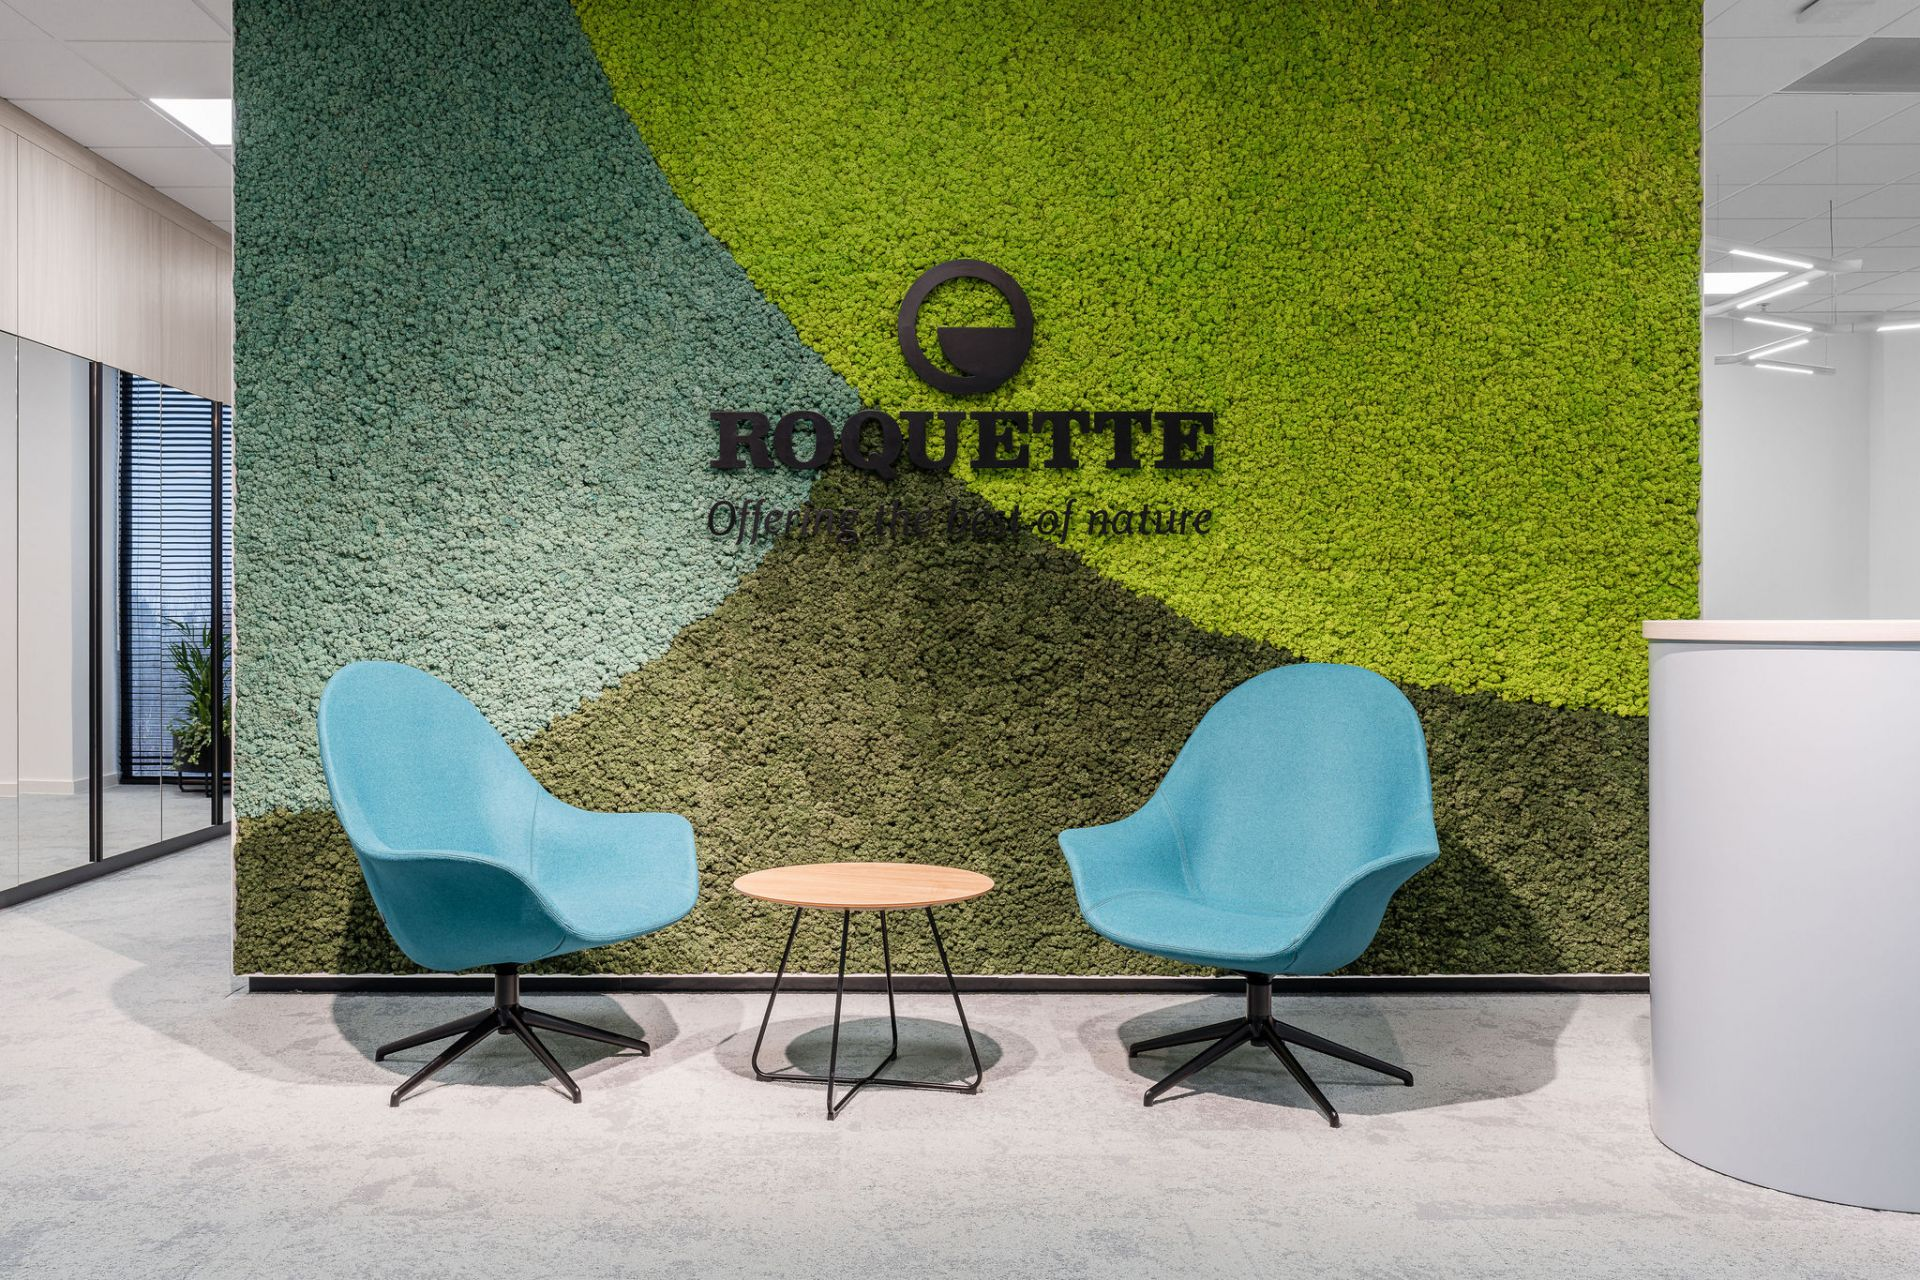 Roquette office Warsaw